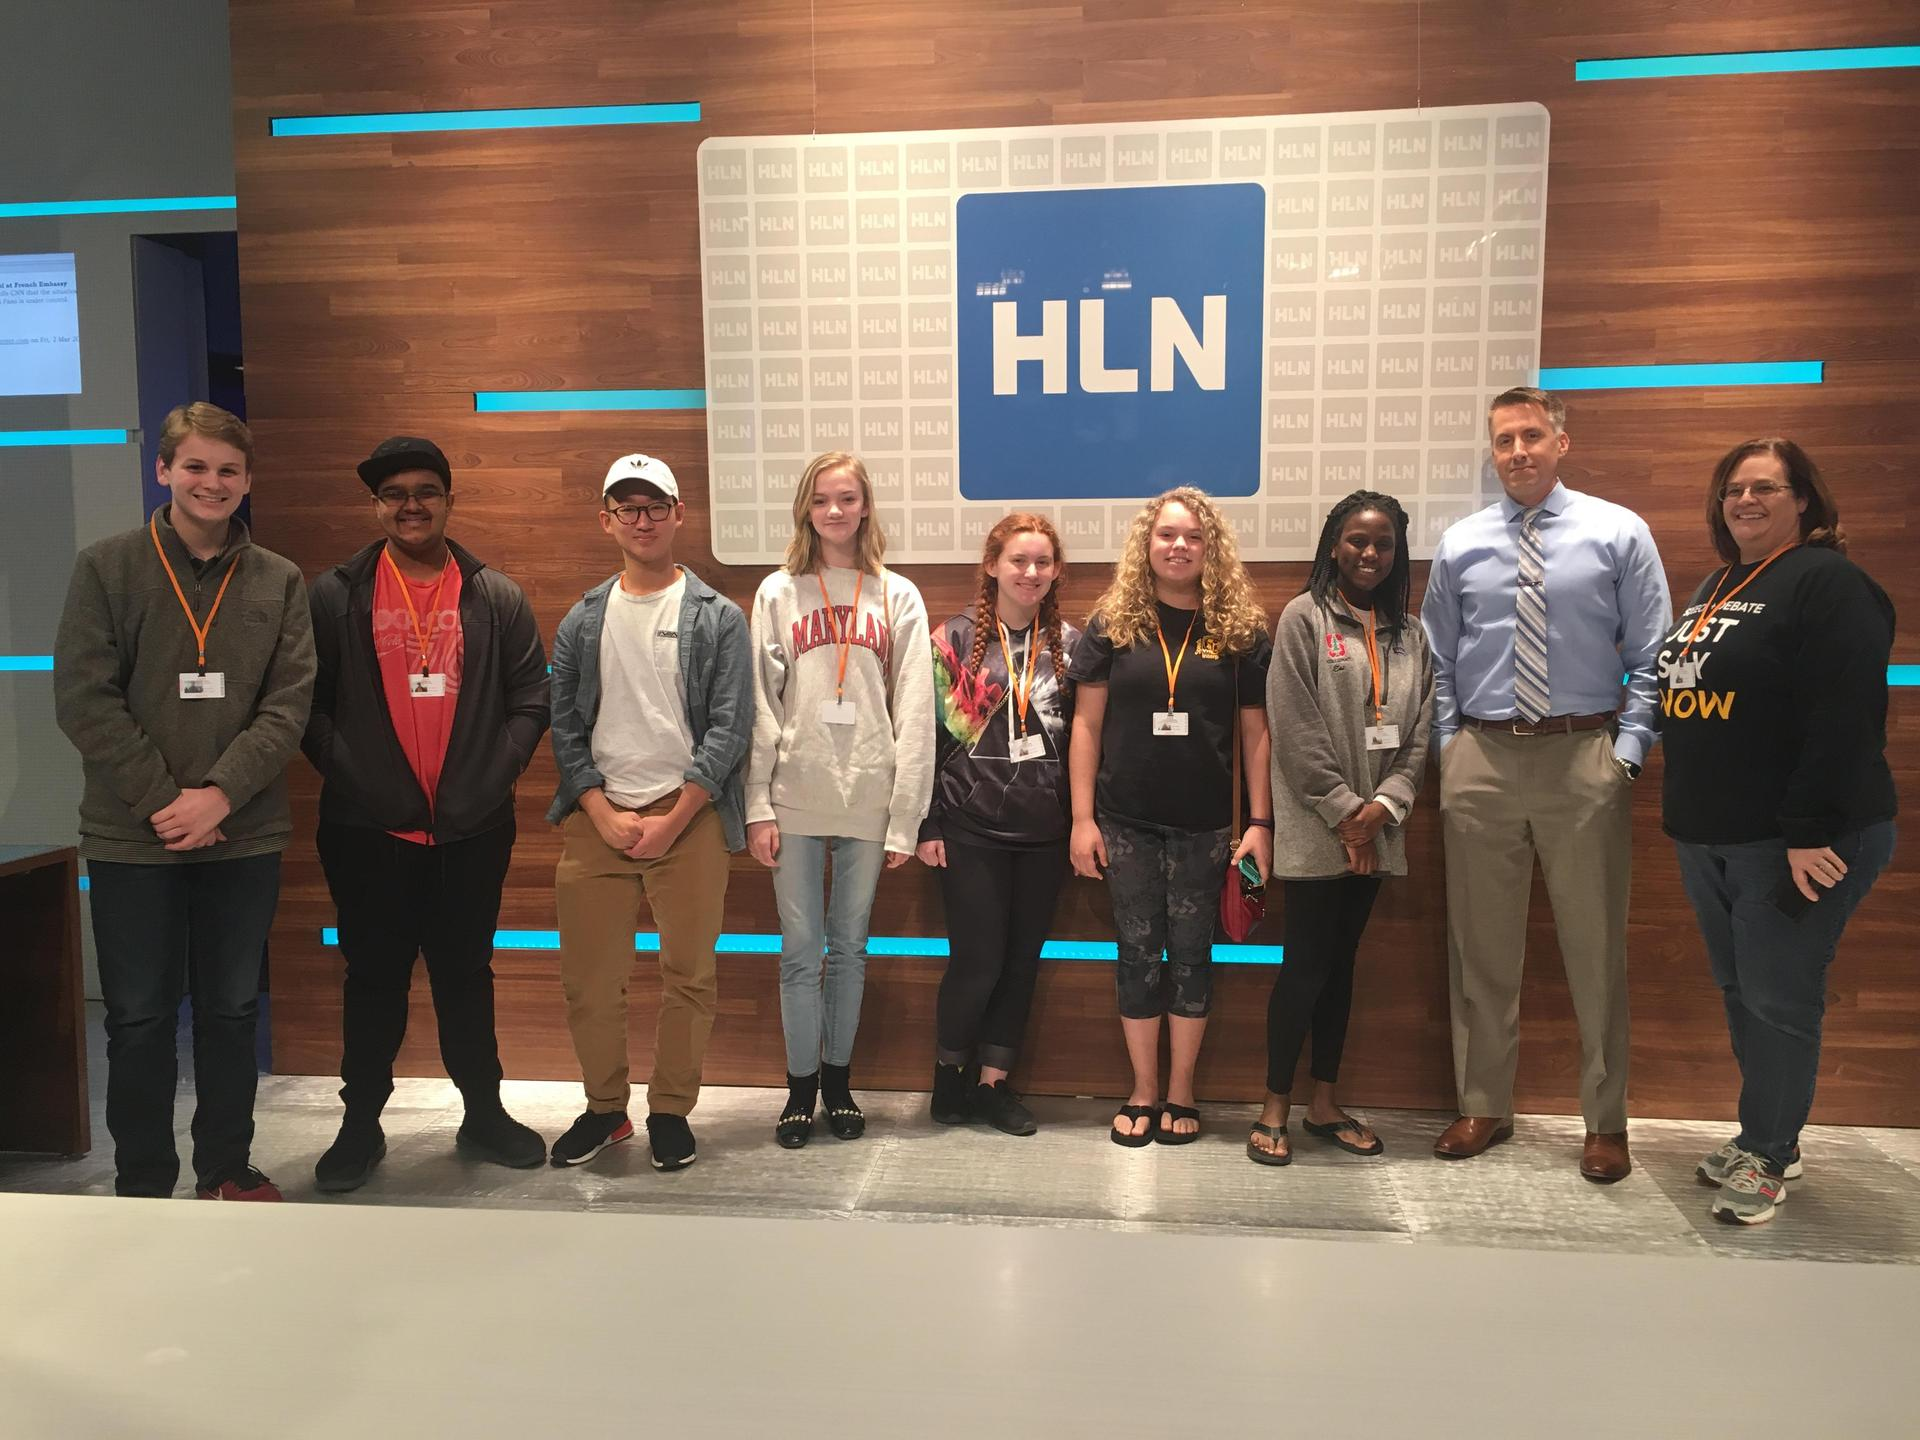 Members of the team got to meet HLN weatherman, Bob Van Dillen.